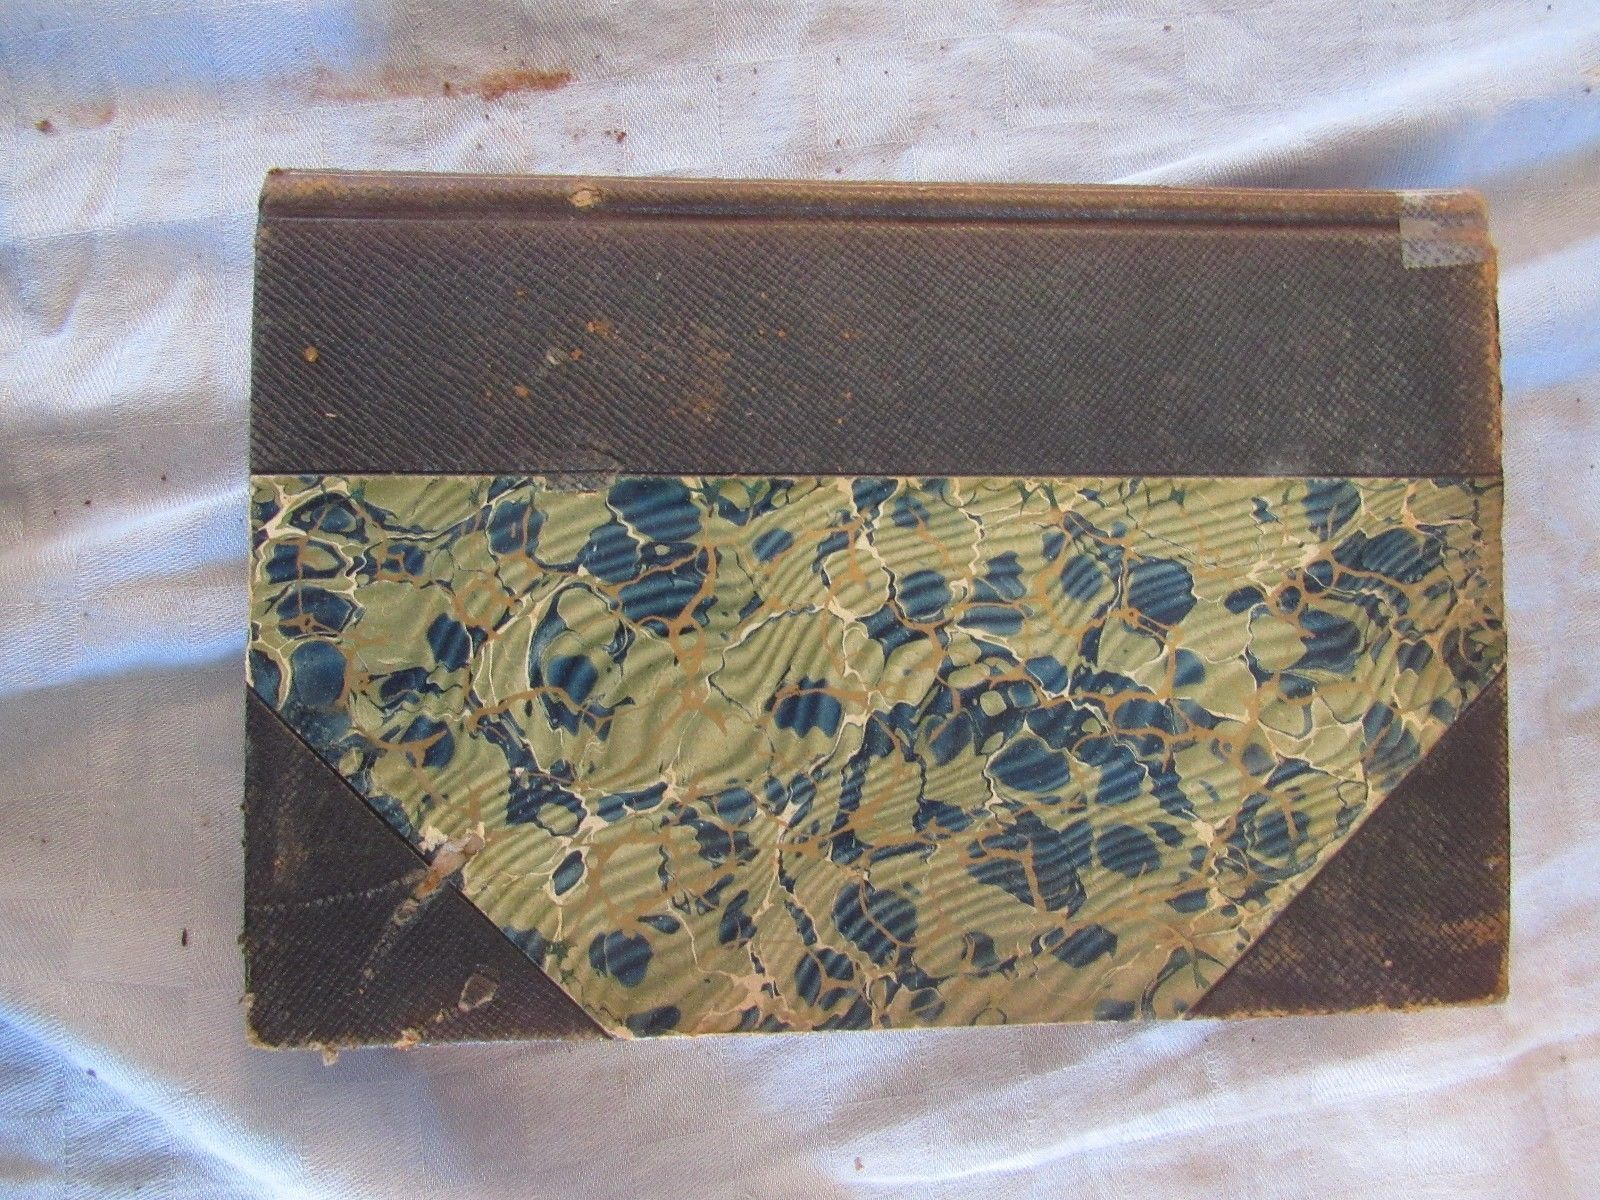 14 Volumes of Modern Eloquence Antique Leather Bound J D Morris 1900 Thomas Reed